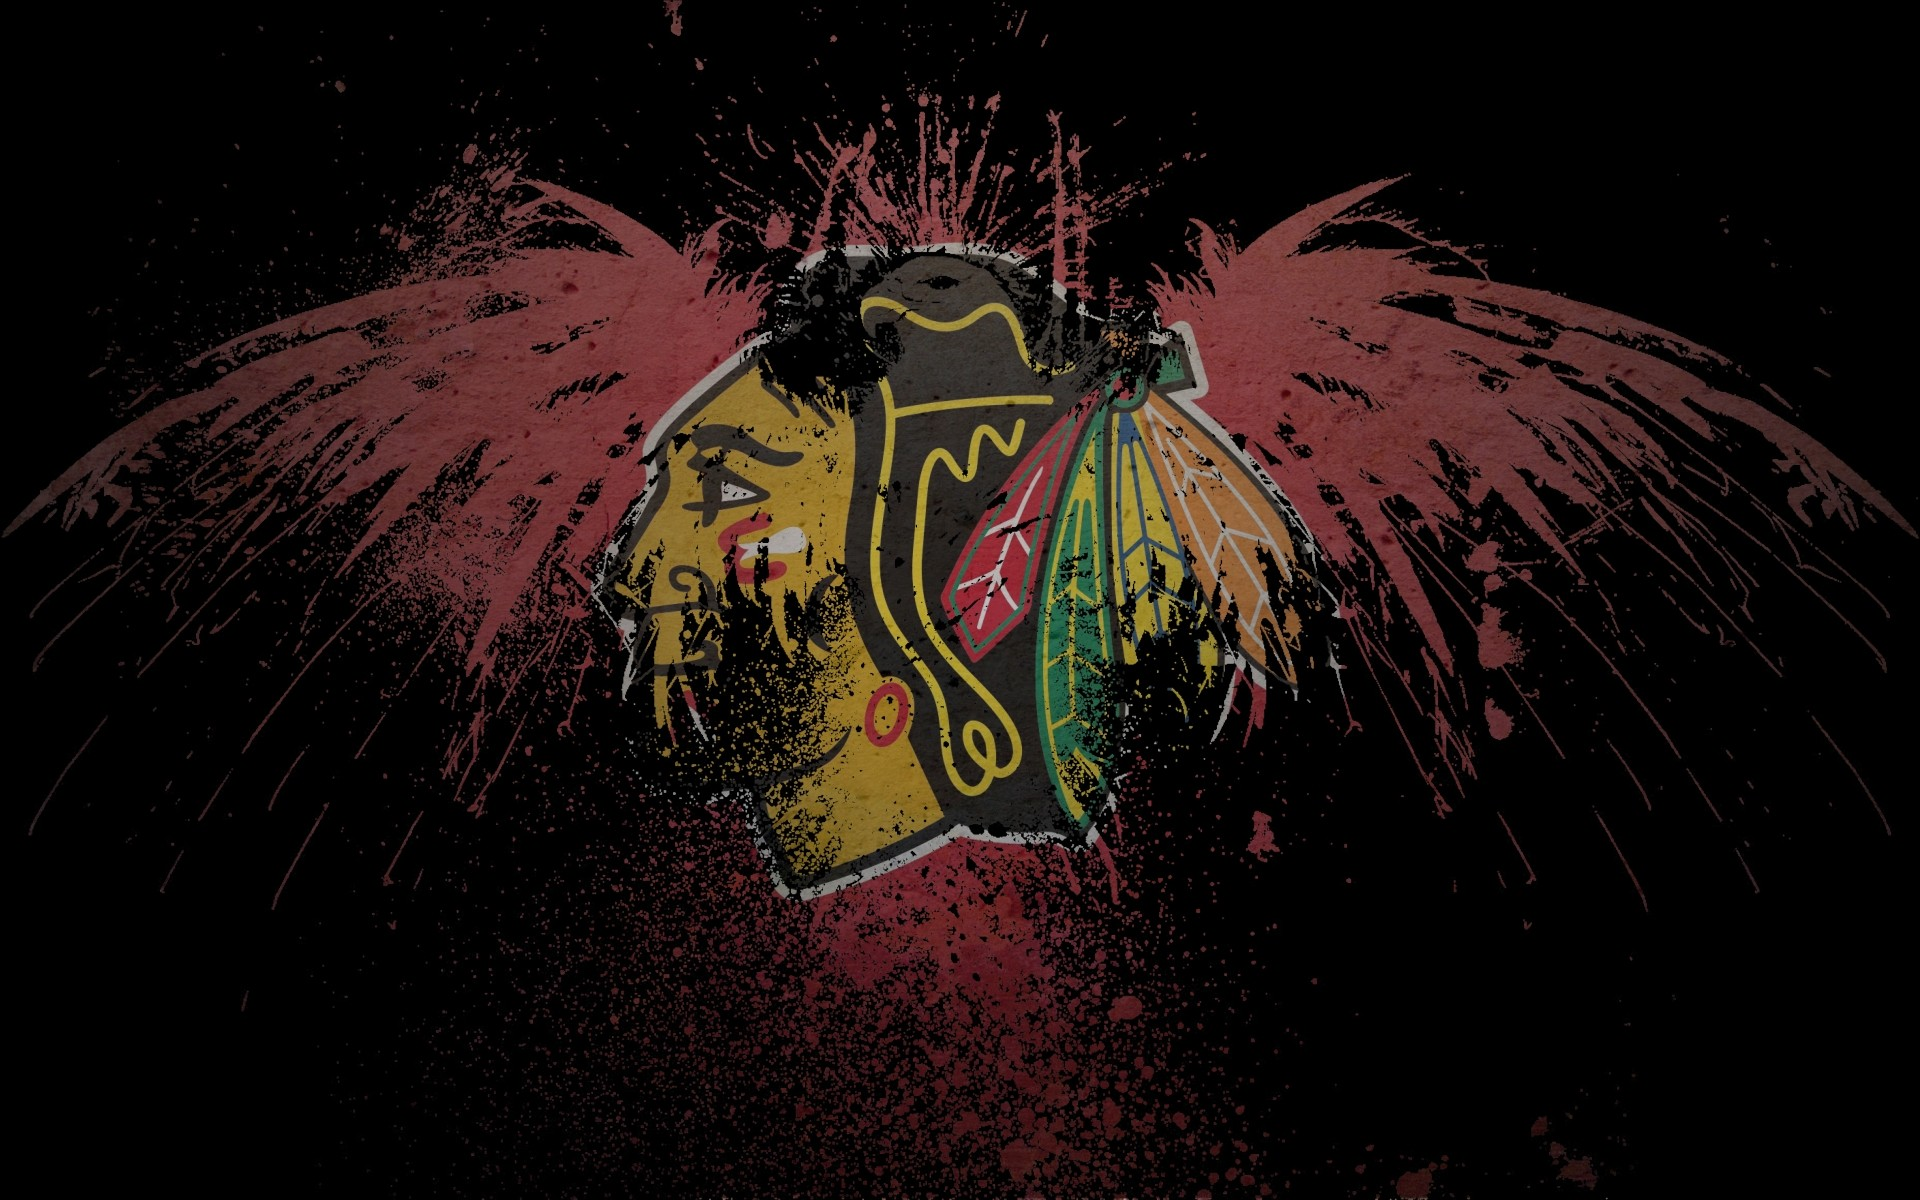 Blackhawks wallpaper download free cool full hd - Hawk iphone wallpaper ...